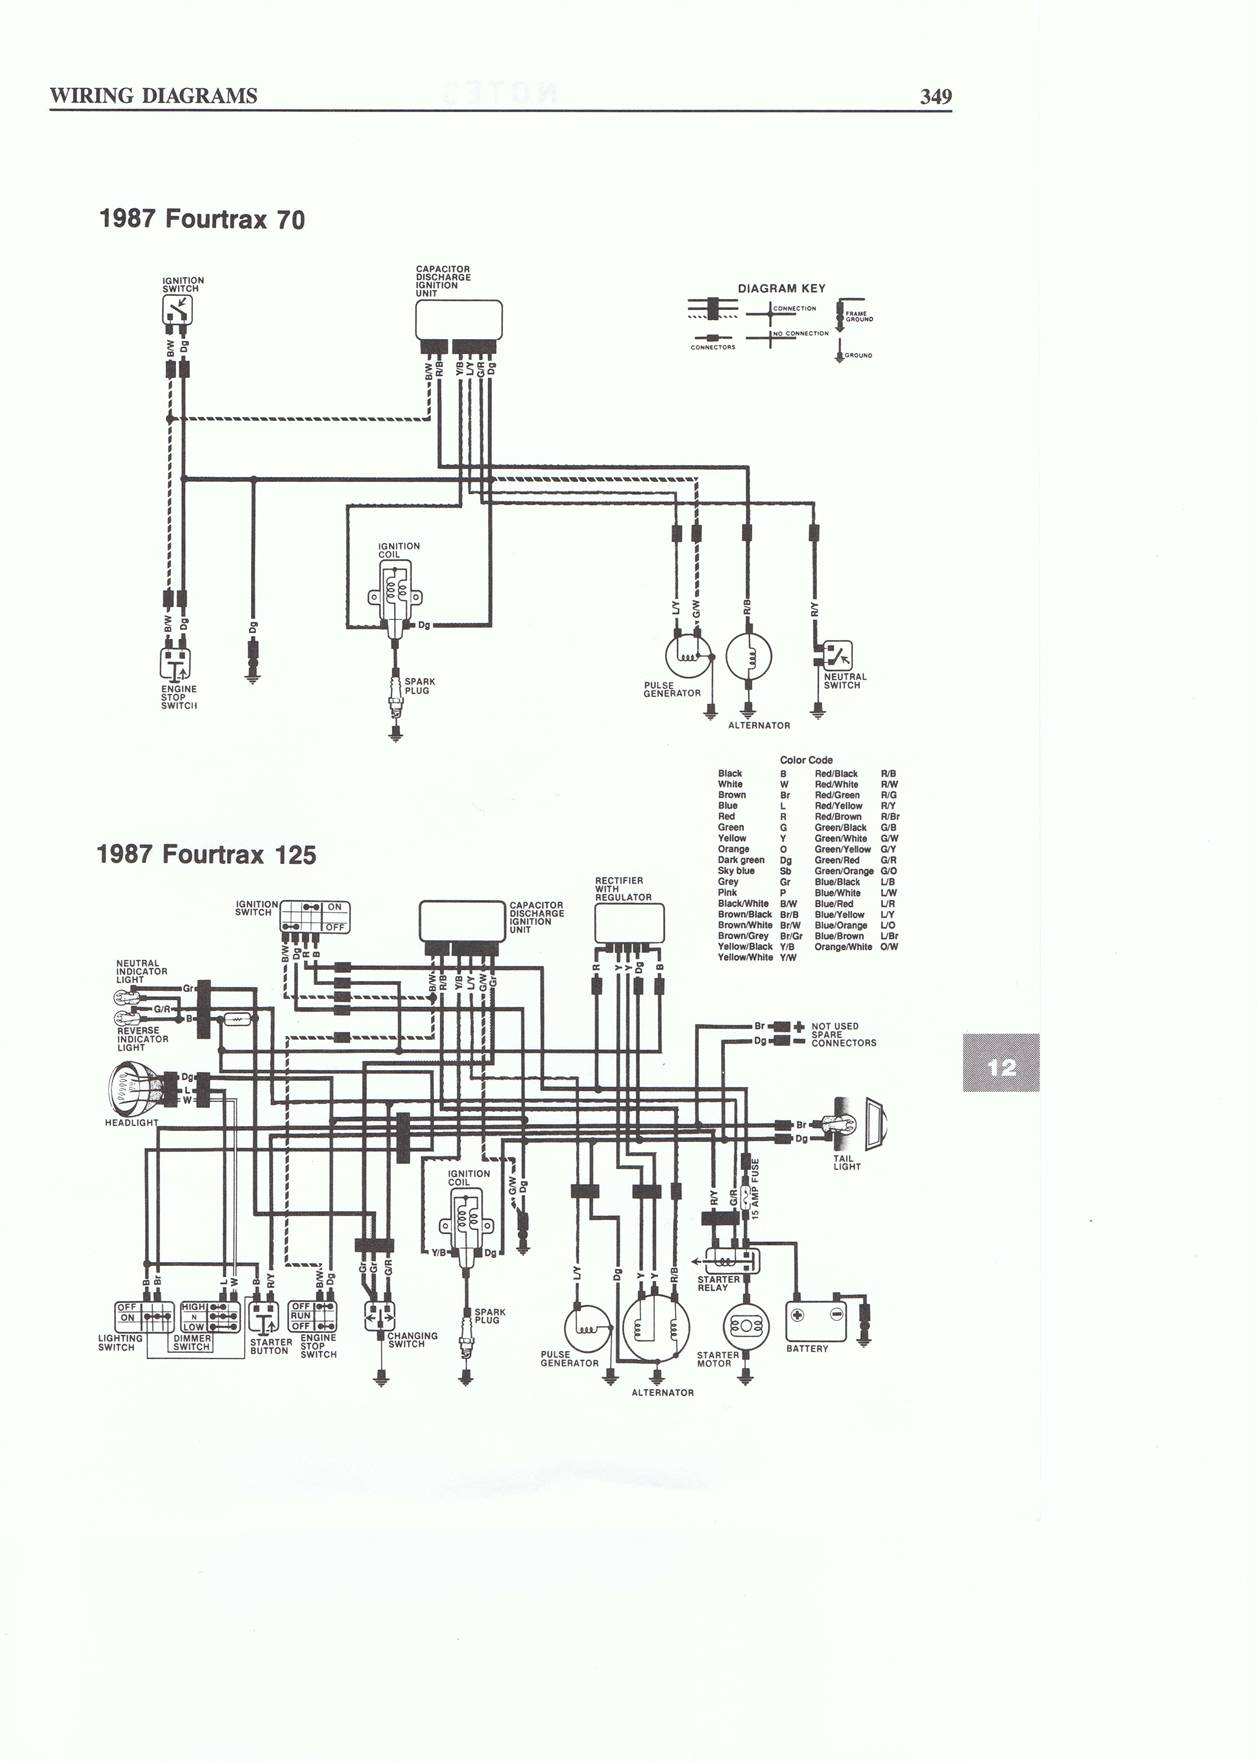 gy6 engine wiring diagram?t=1398725710 gy6 engine wiring diagram gy6 electric choke wiring diagram at gsmportal.co